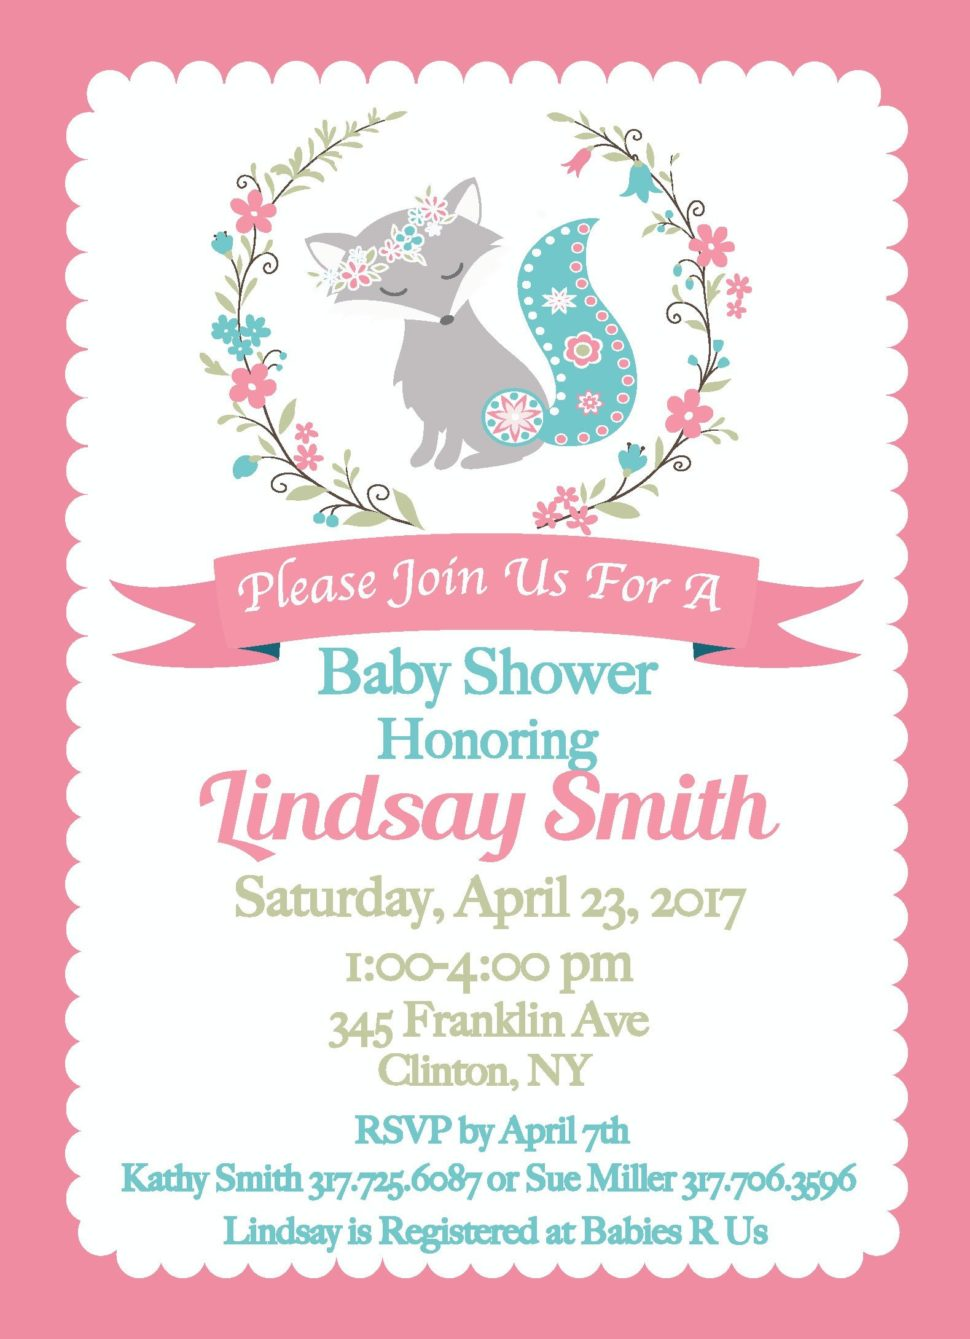 Medium Size of Baby Shower:baby Shower Halls With Baby Shower At The Park Plus Recuerdos De Baby Shower Together With Fun Baby Shower Games As Well As Baby Shower Hostess Gifts And Baby Shower Verses Baby Shower Invitation Wording Baby Boy Shower Favors Baby Shower Baby Shower Baby Shower Adalah Baby Shower Quotes Baby Shower Wishing Well Best Baby Shower Gifts 2018 Corner Baby Shower Thank You Cards Wording Gallery Bridal